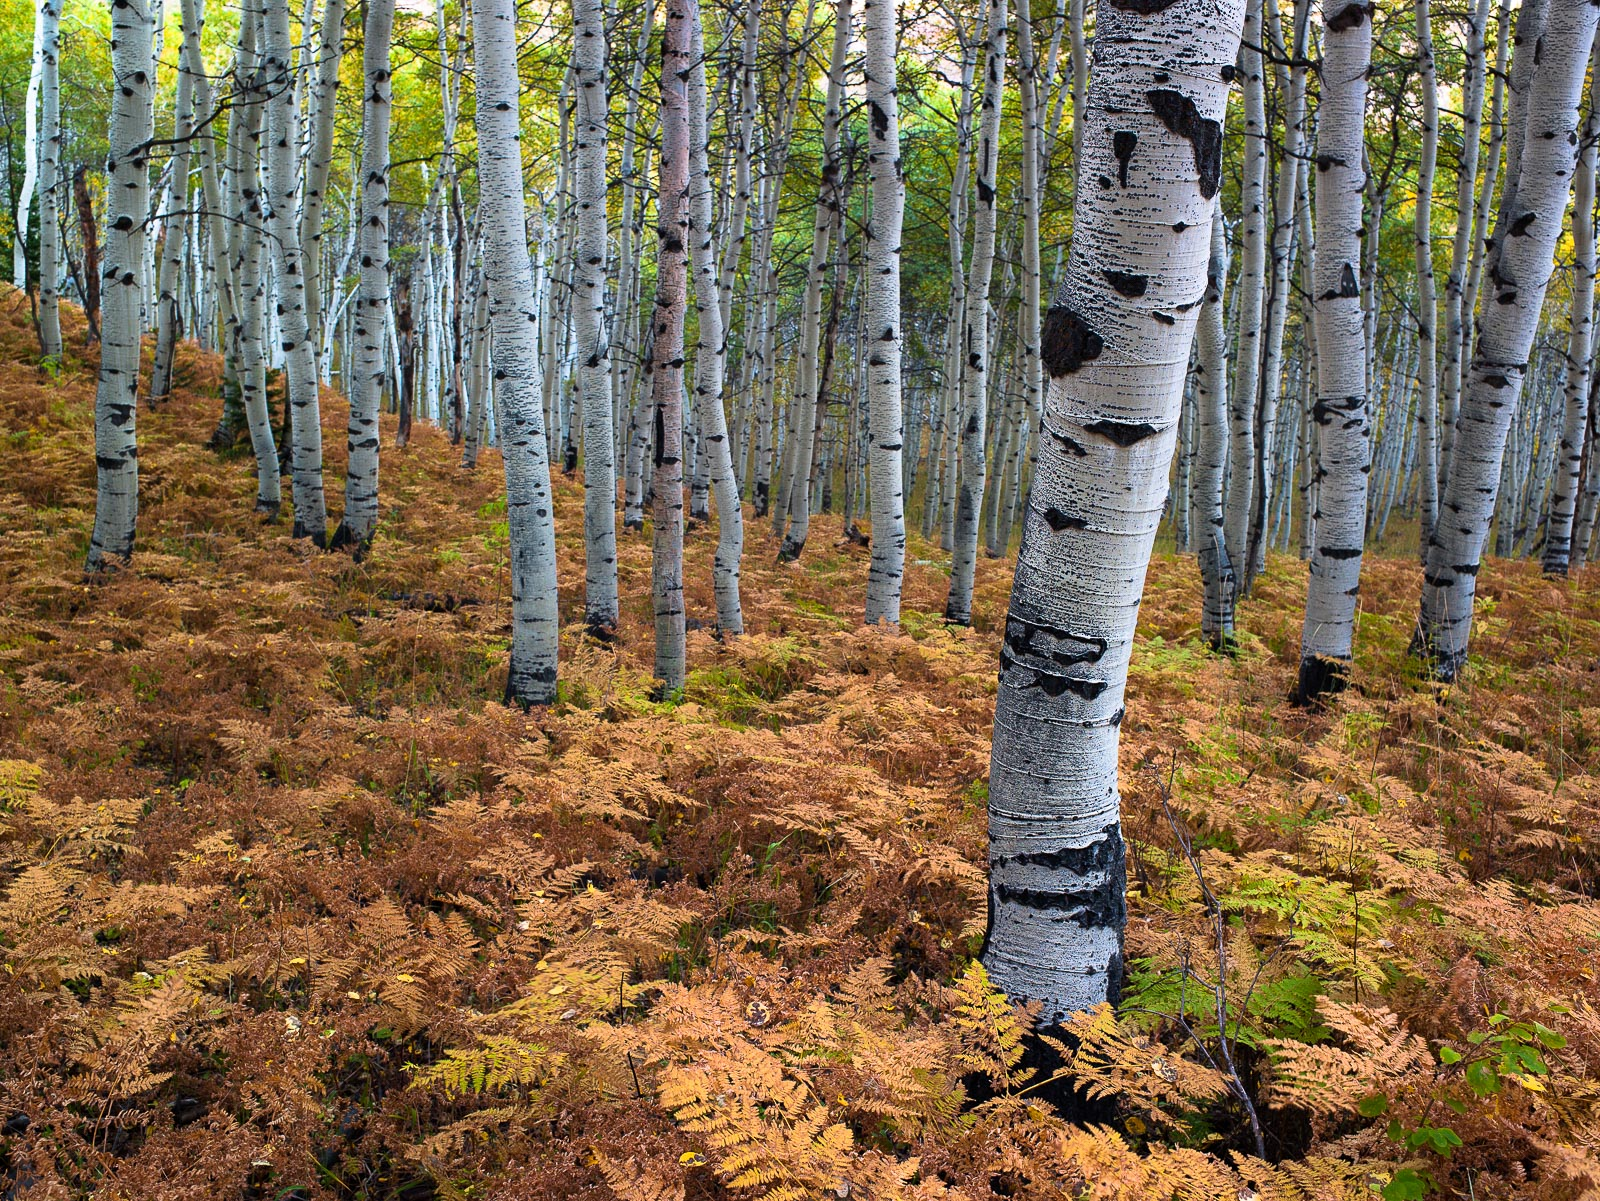 Within the Ferns,Autumn,Birch Tree,Forest,Utah,horizontal, photo